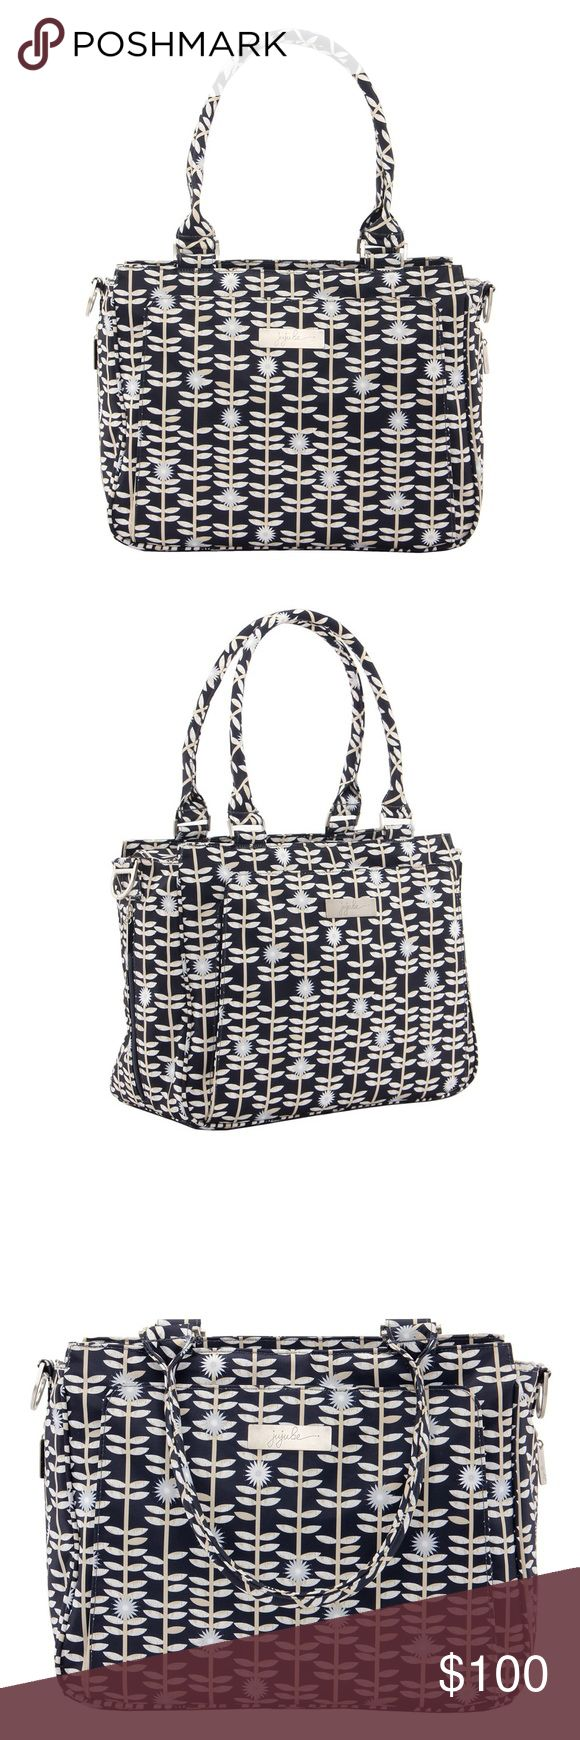 NWOT!!! Jujube diaper bag!! Brand new without tags JuJuBe be classy collection the print is dandy lines. jujube Bags Baby Bags